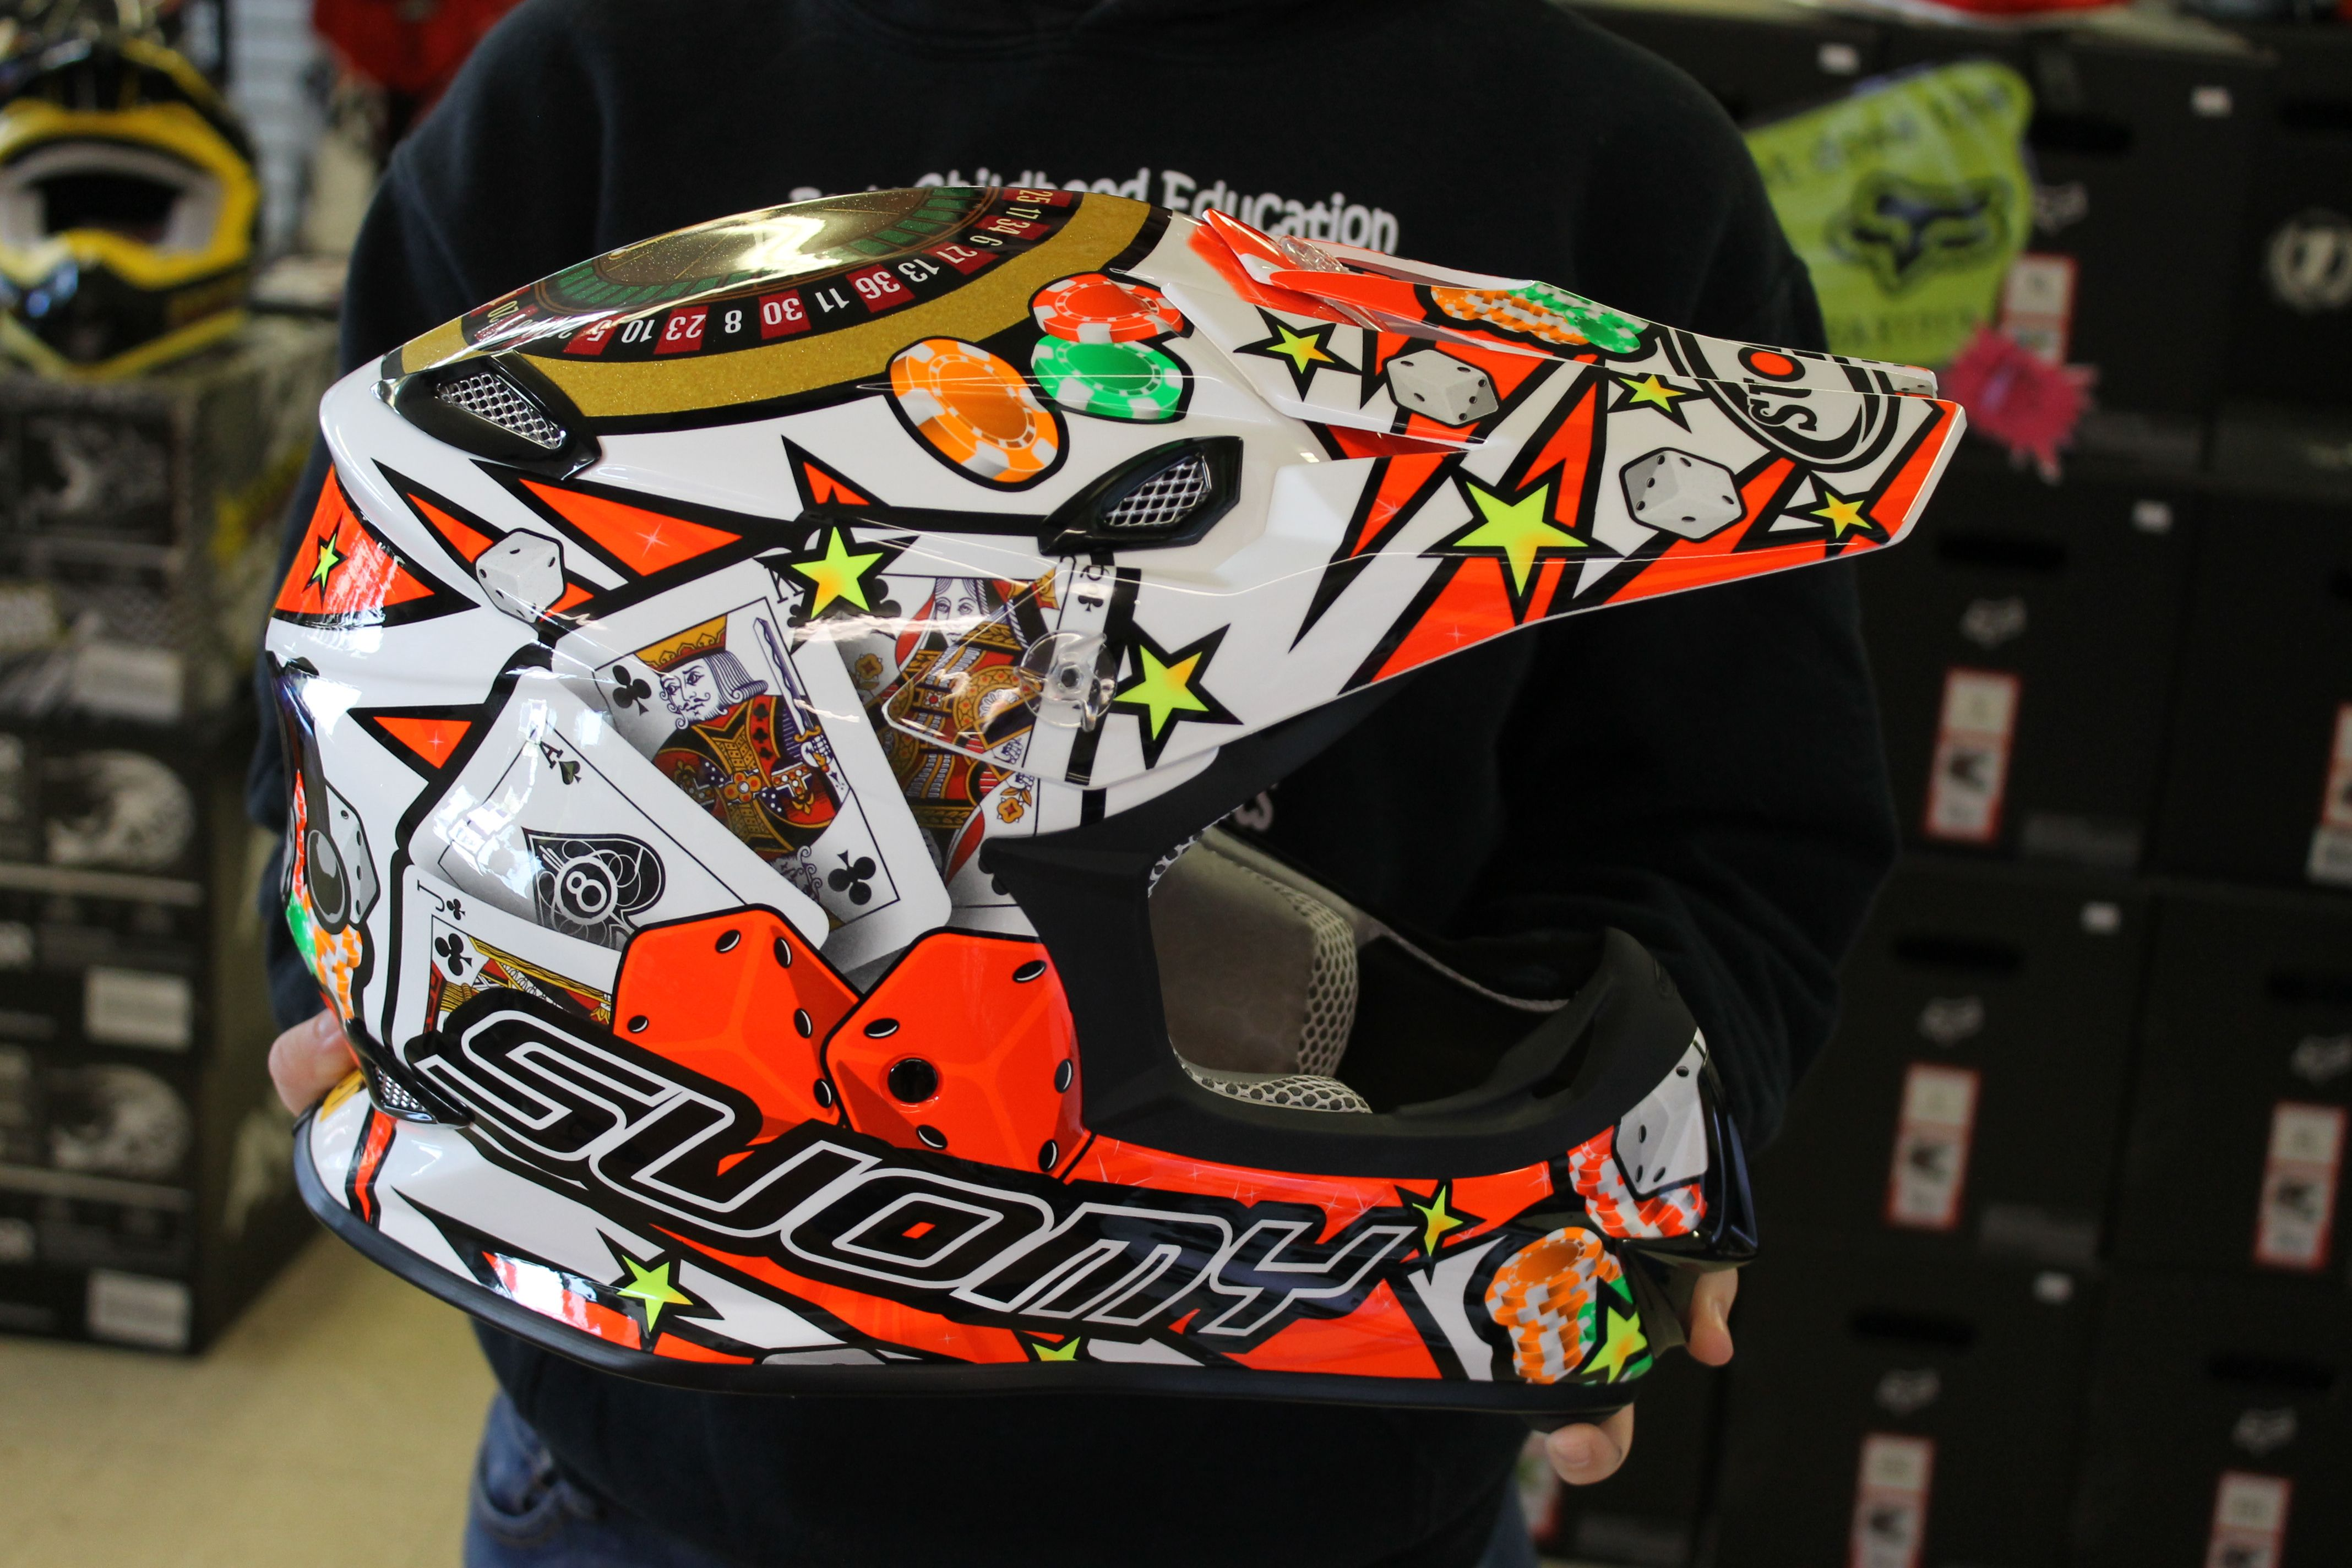 WE NOW CARRY SUOMY Check out this sick helmet We have more